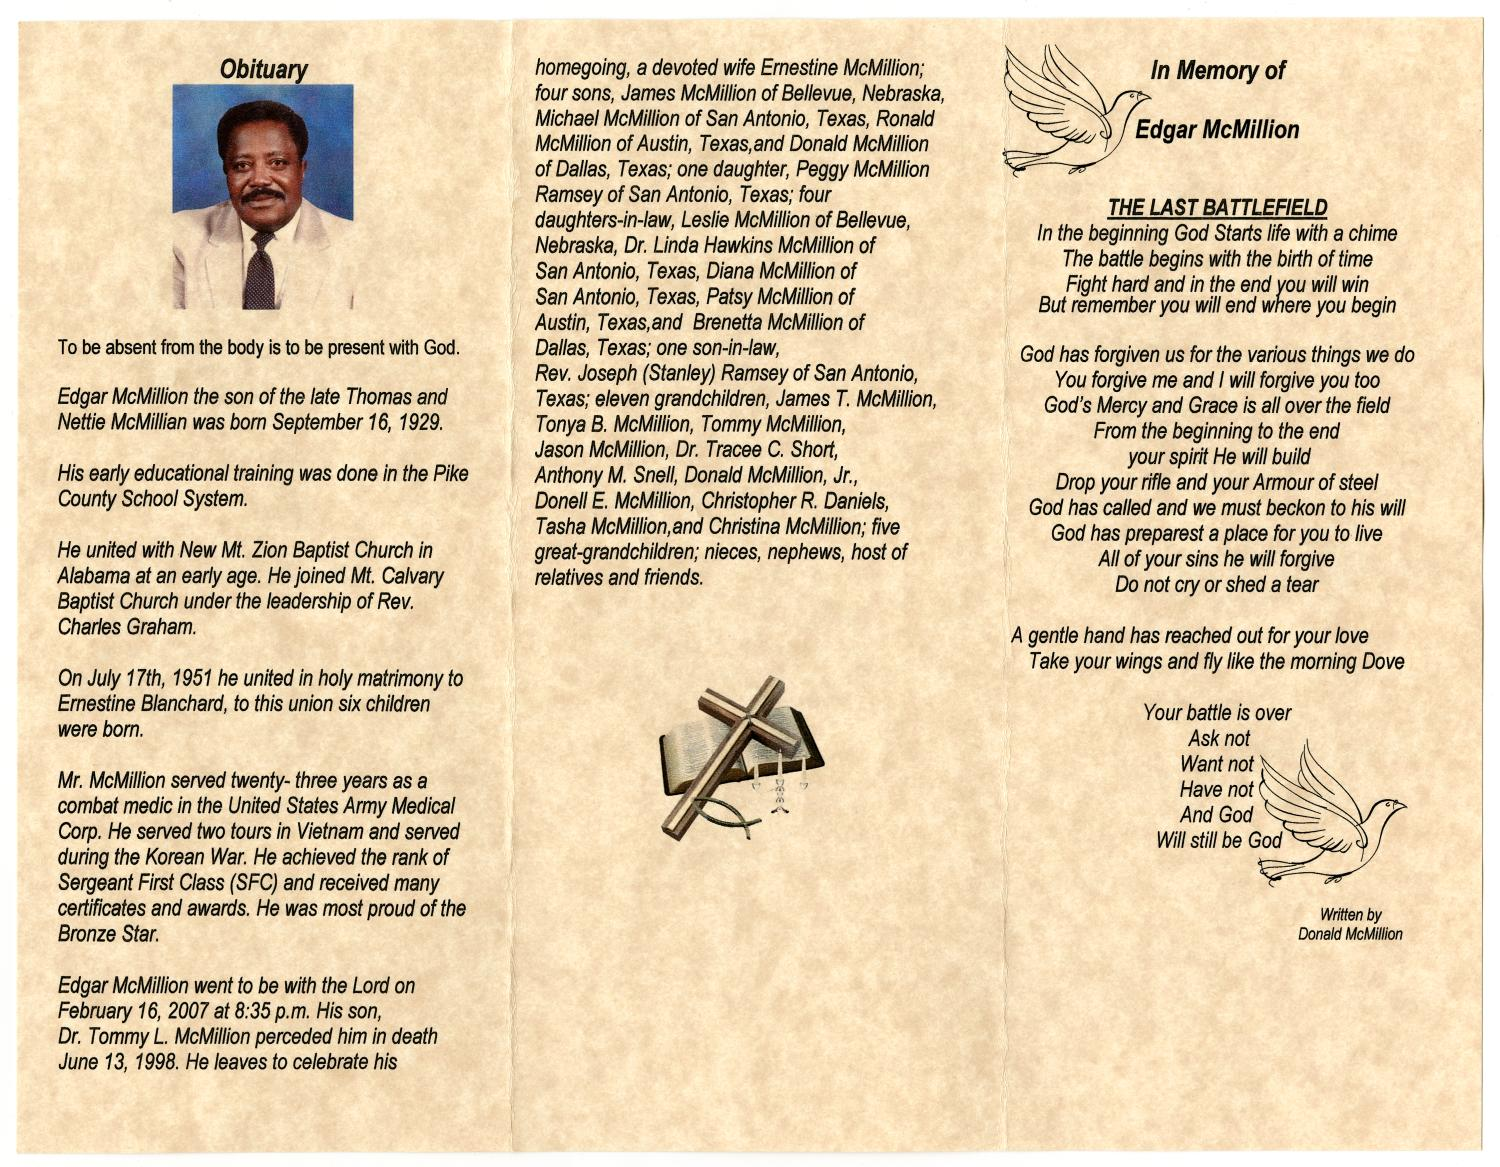 Funeral program for edgar mcmillion february 23 2007 page 2 funeral program for edgar mcmillion february 23 2007 page 2 of 3 the portal to texas history aiddatafo Choice Image